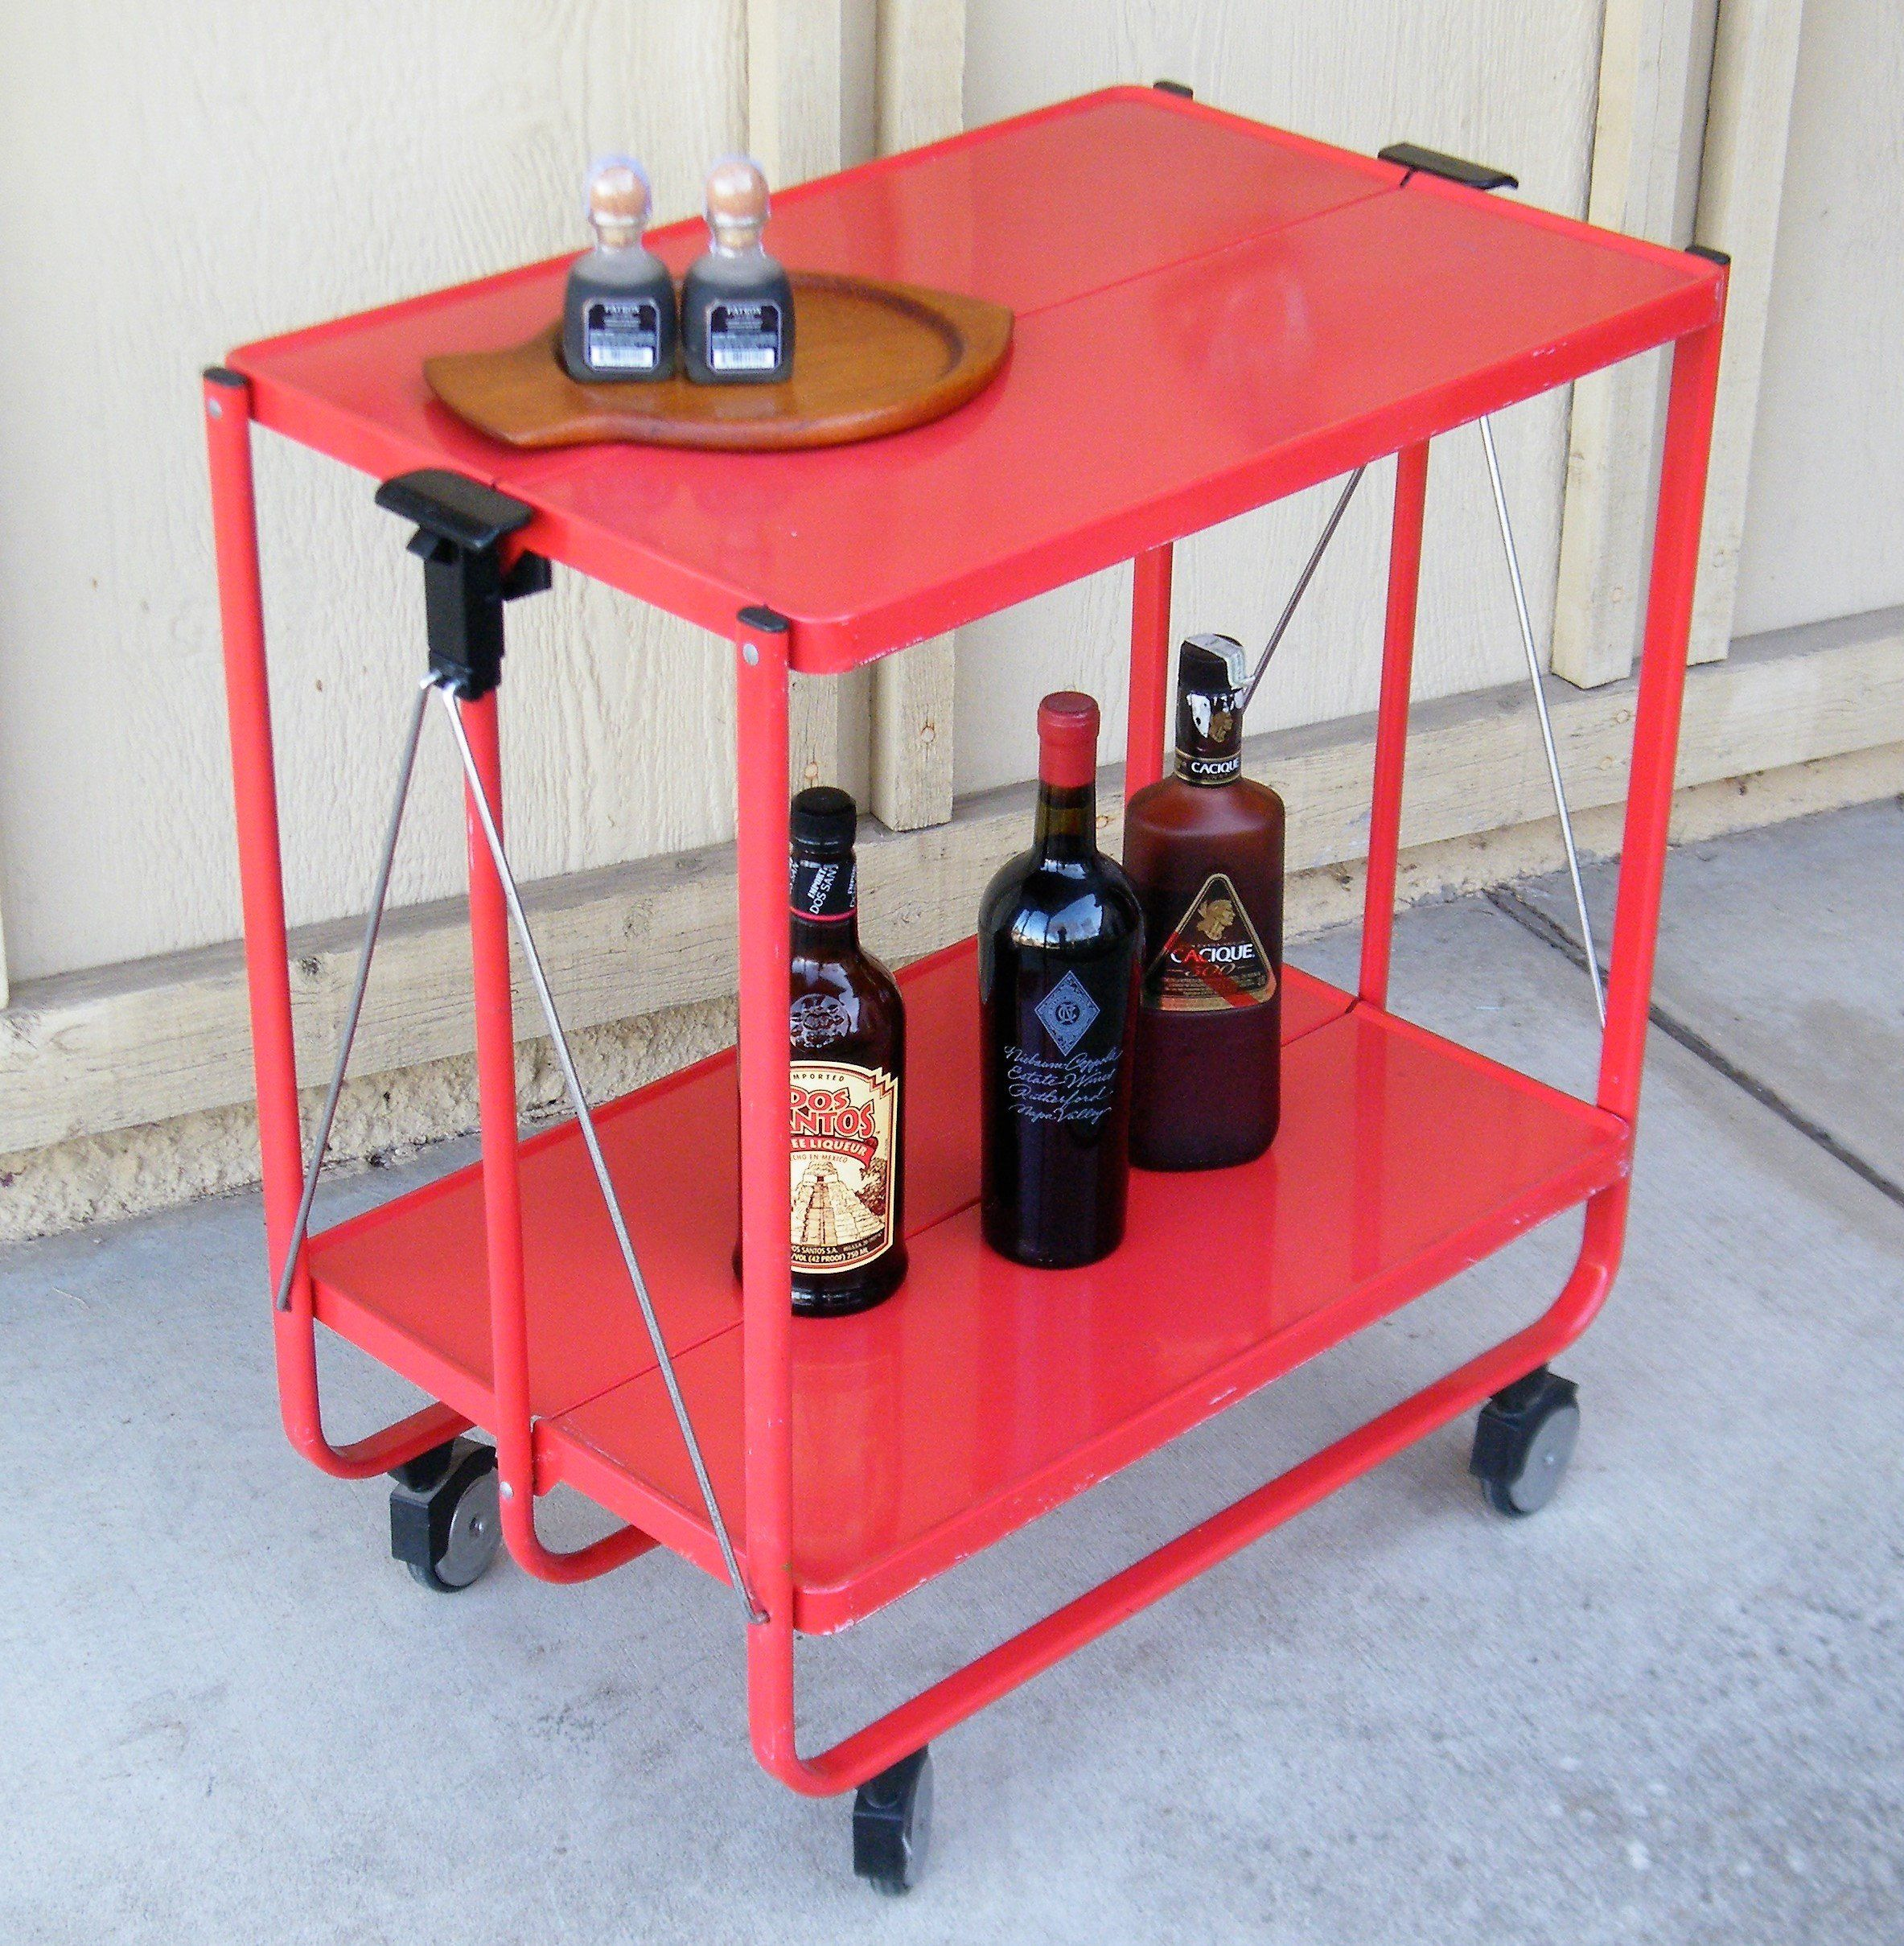 Folding Service Cart Trolley By Louis Lucien Lepoix For Frz Germany Vintage Bar Cart Rolling Liquor Cart By Vintage Bar Carts Folding Trolley Liquor Cart